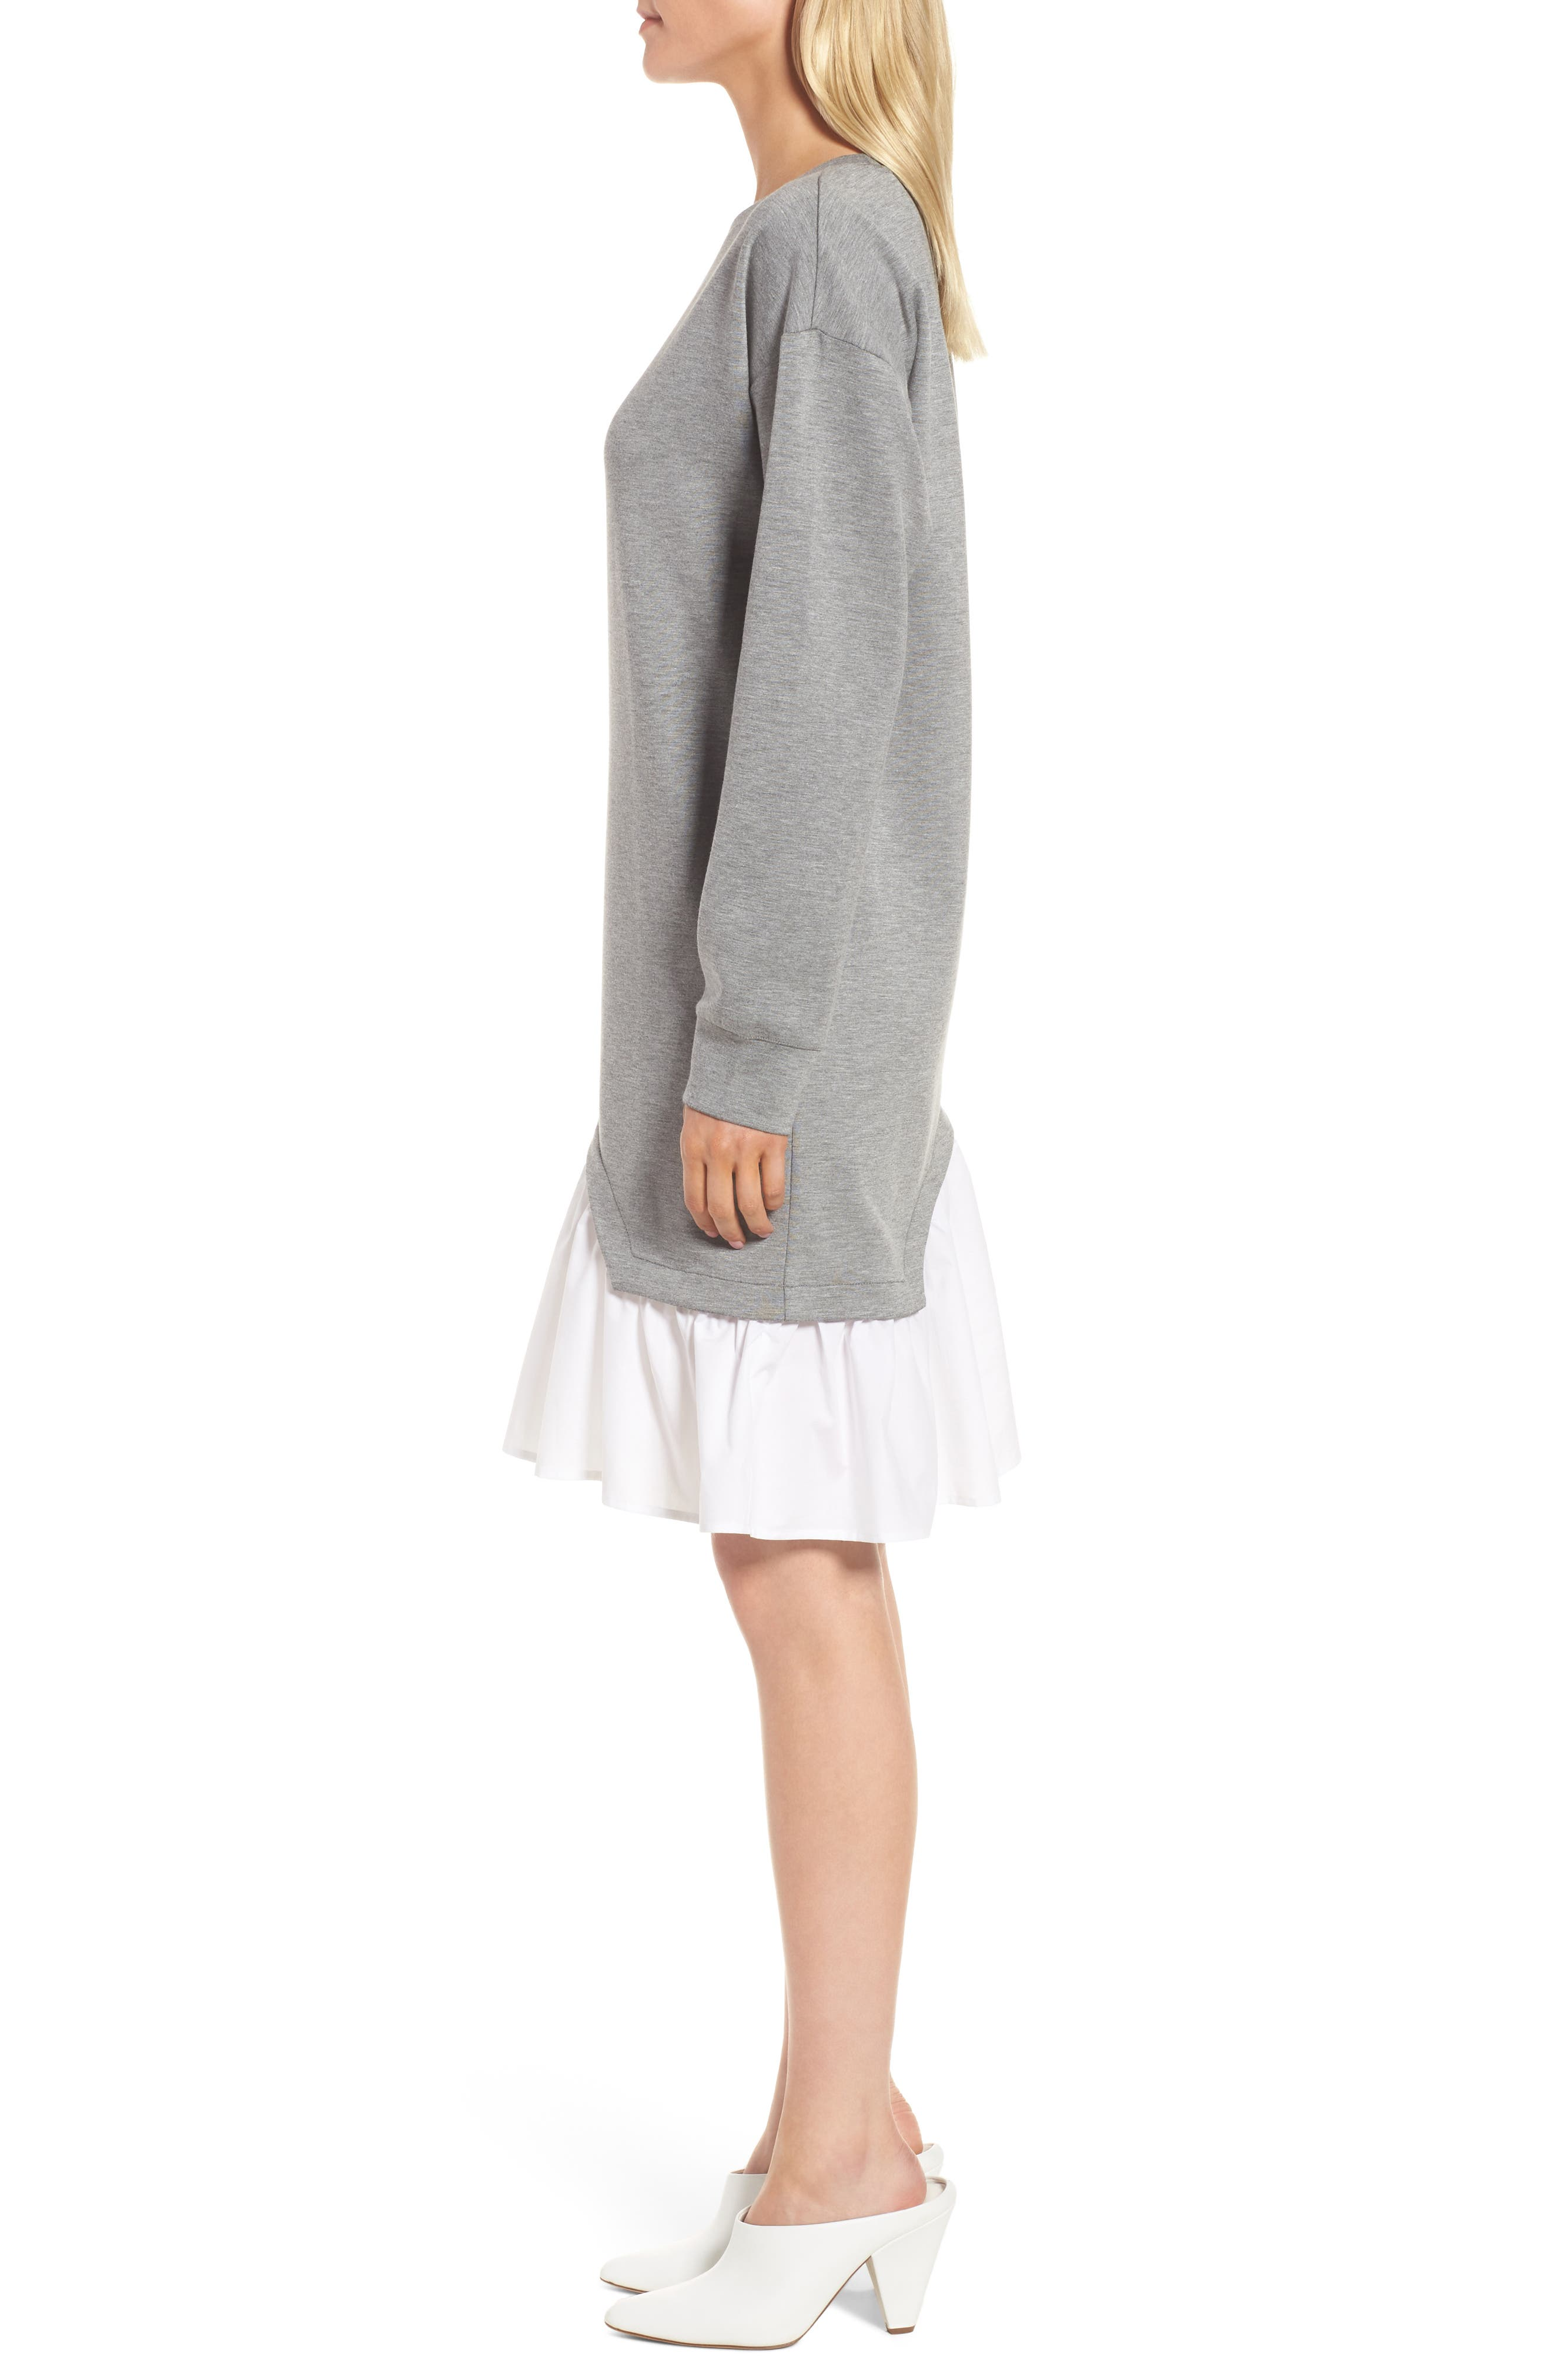 Mixed Media Sweatshirt Dress,                             Alternate thumbnail 4, color,                             Grey Heather